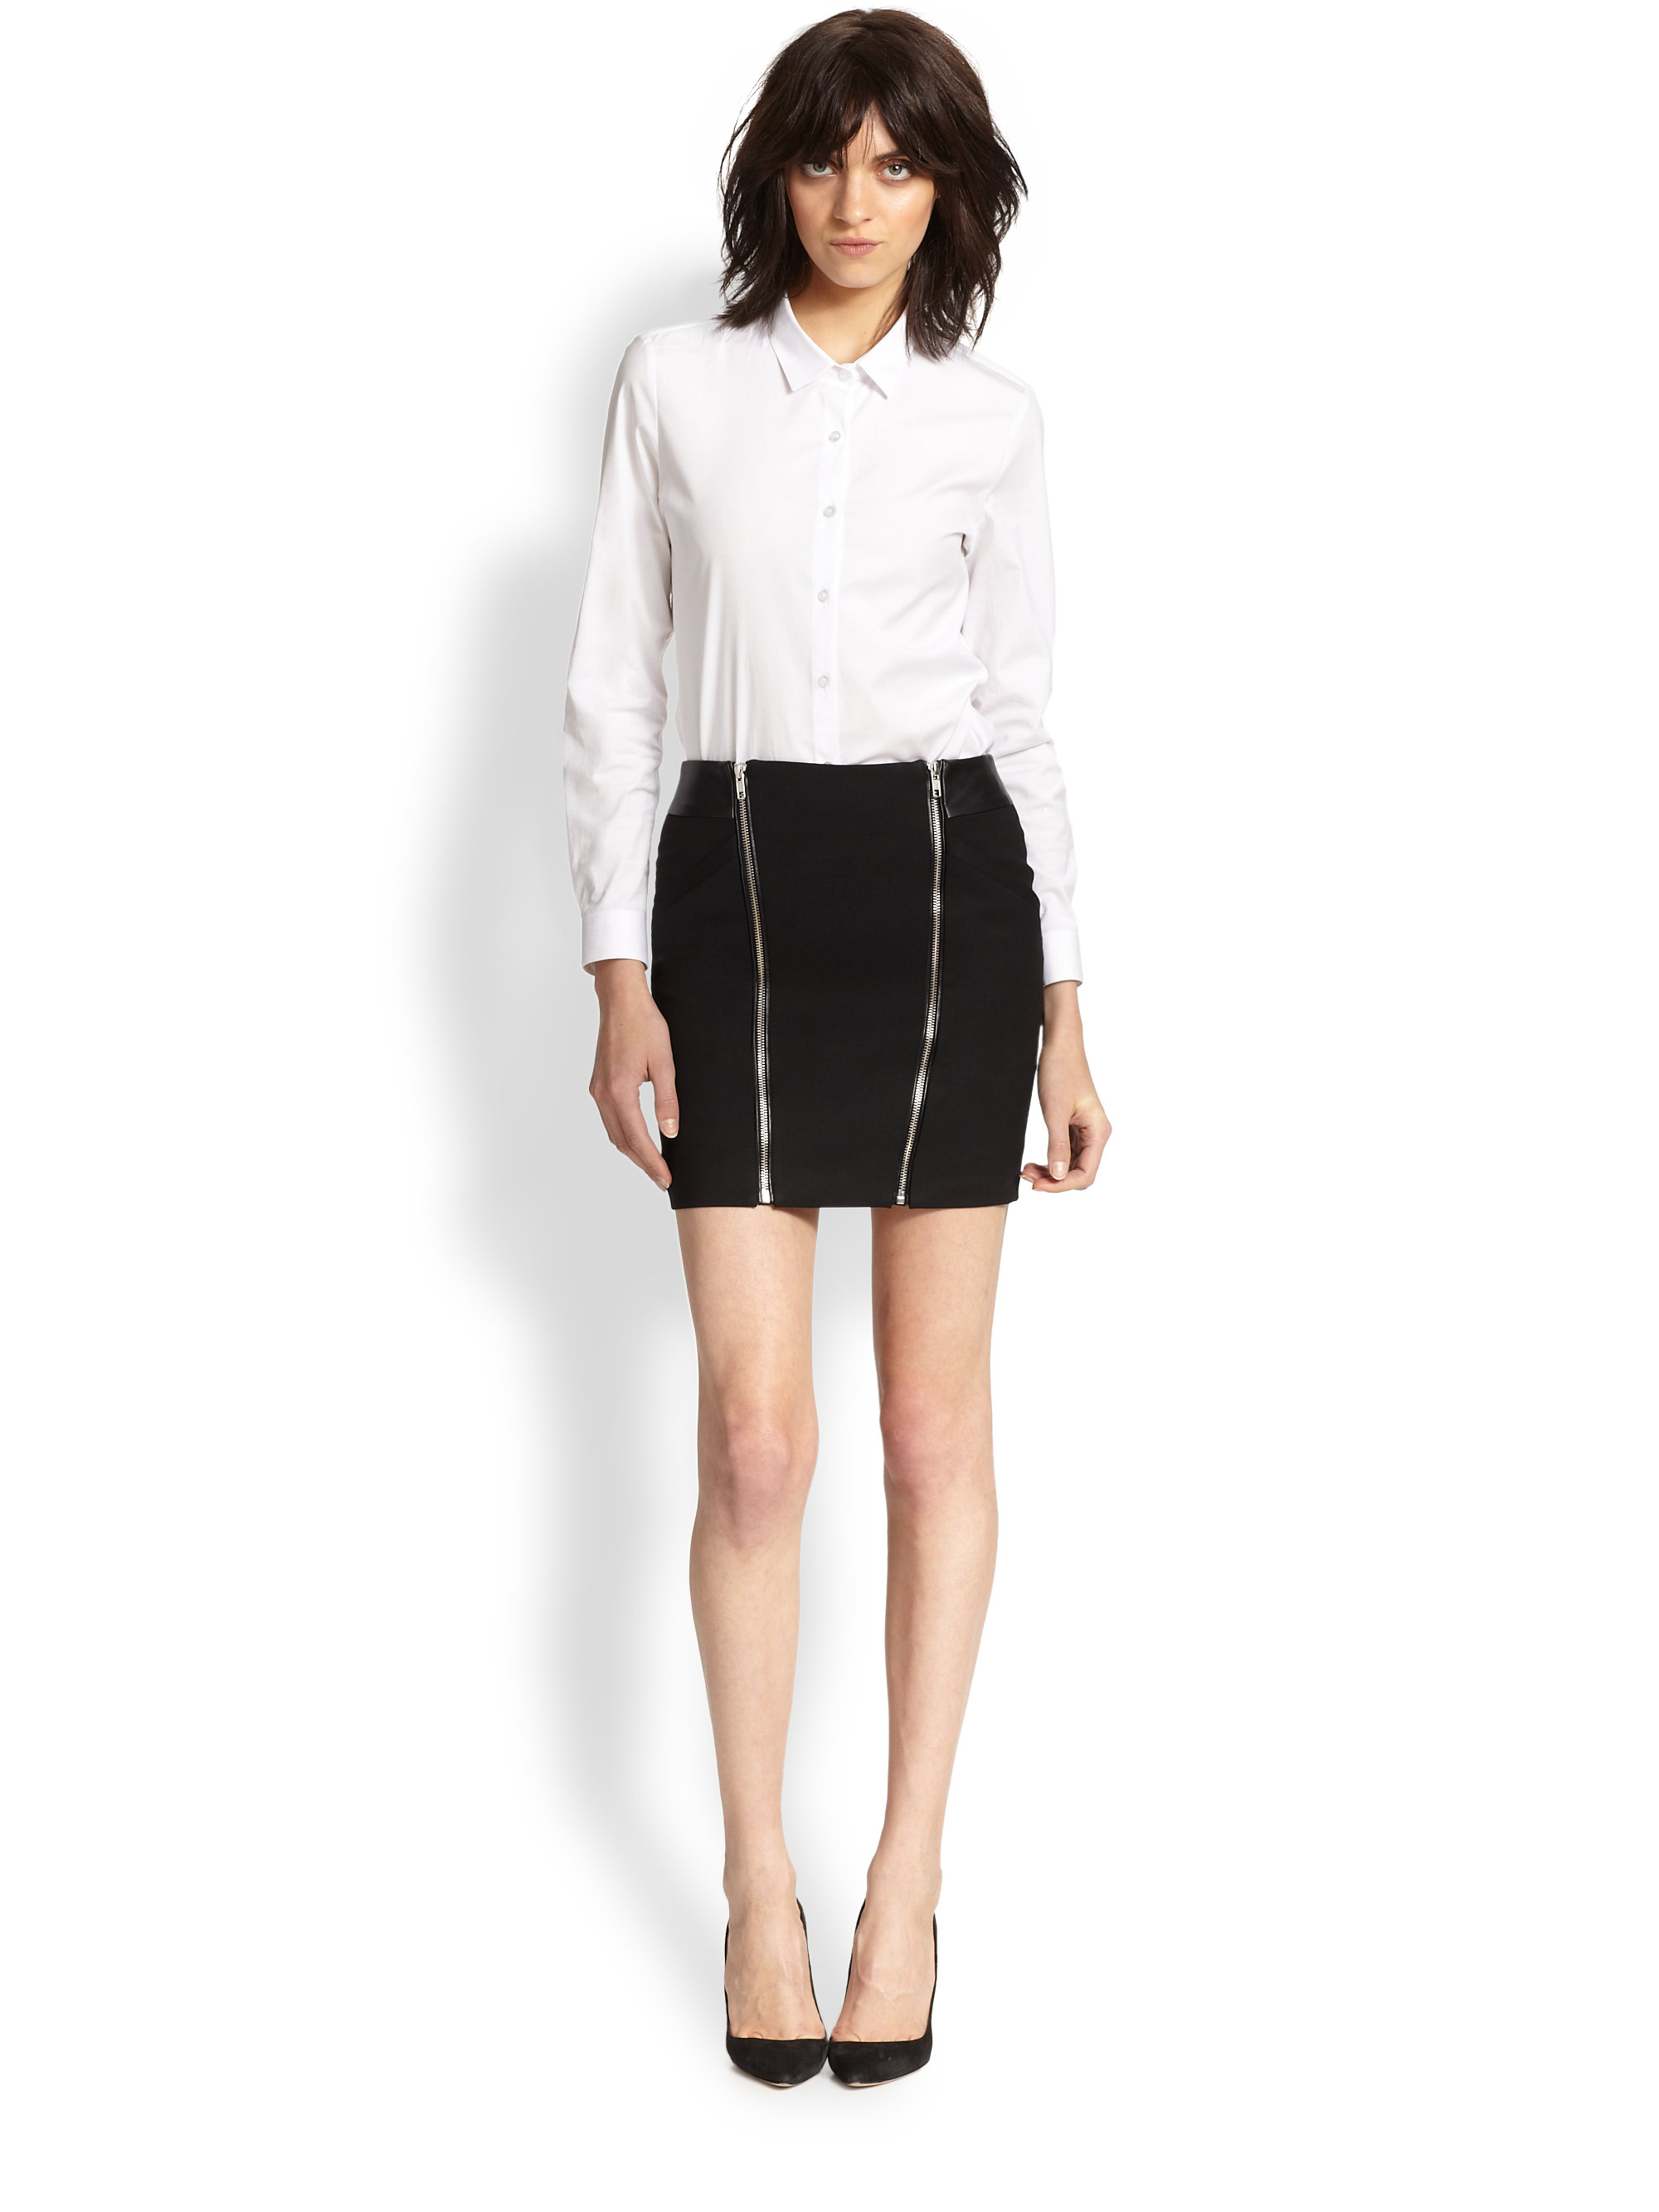 c0ca5d98c5 The Kooples Leather-Trimmed Stretch Wool Mini Skirt in Black - Lyst